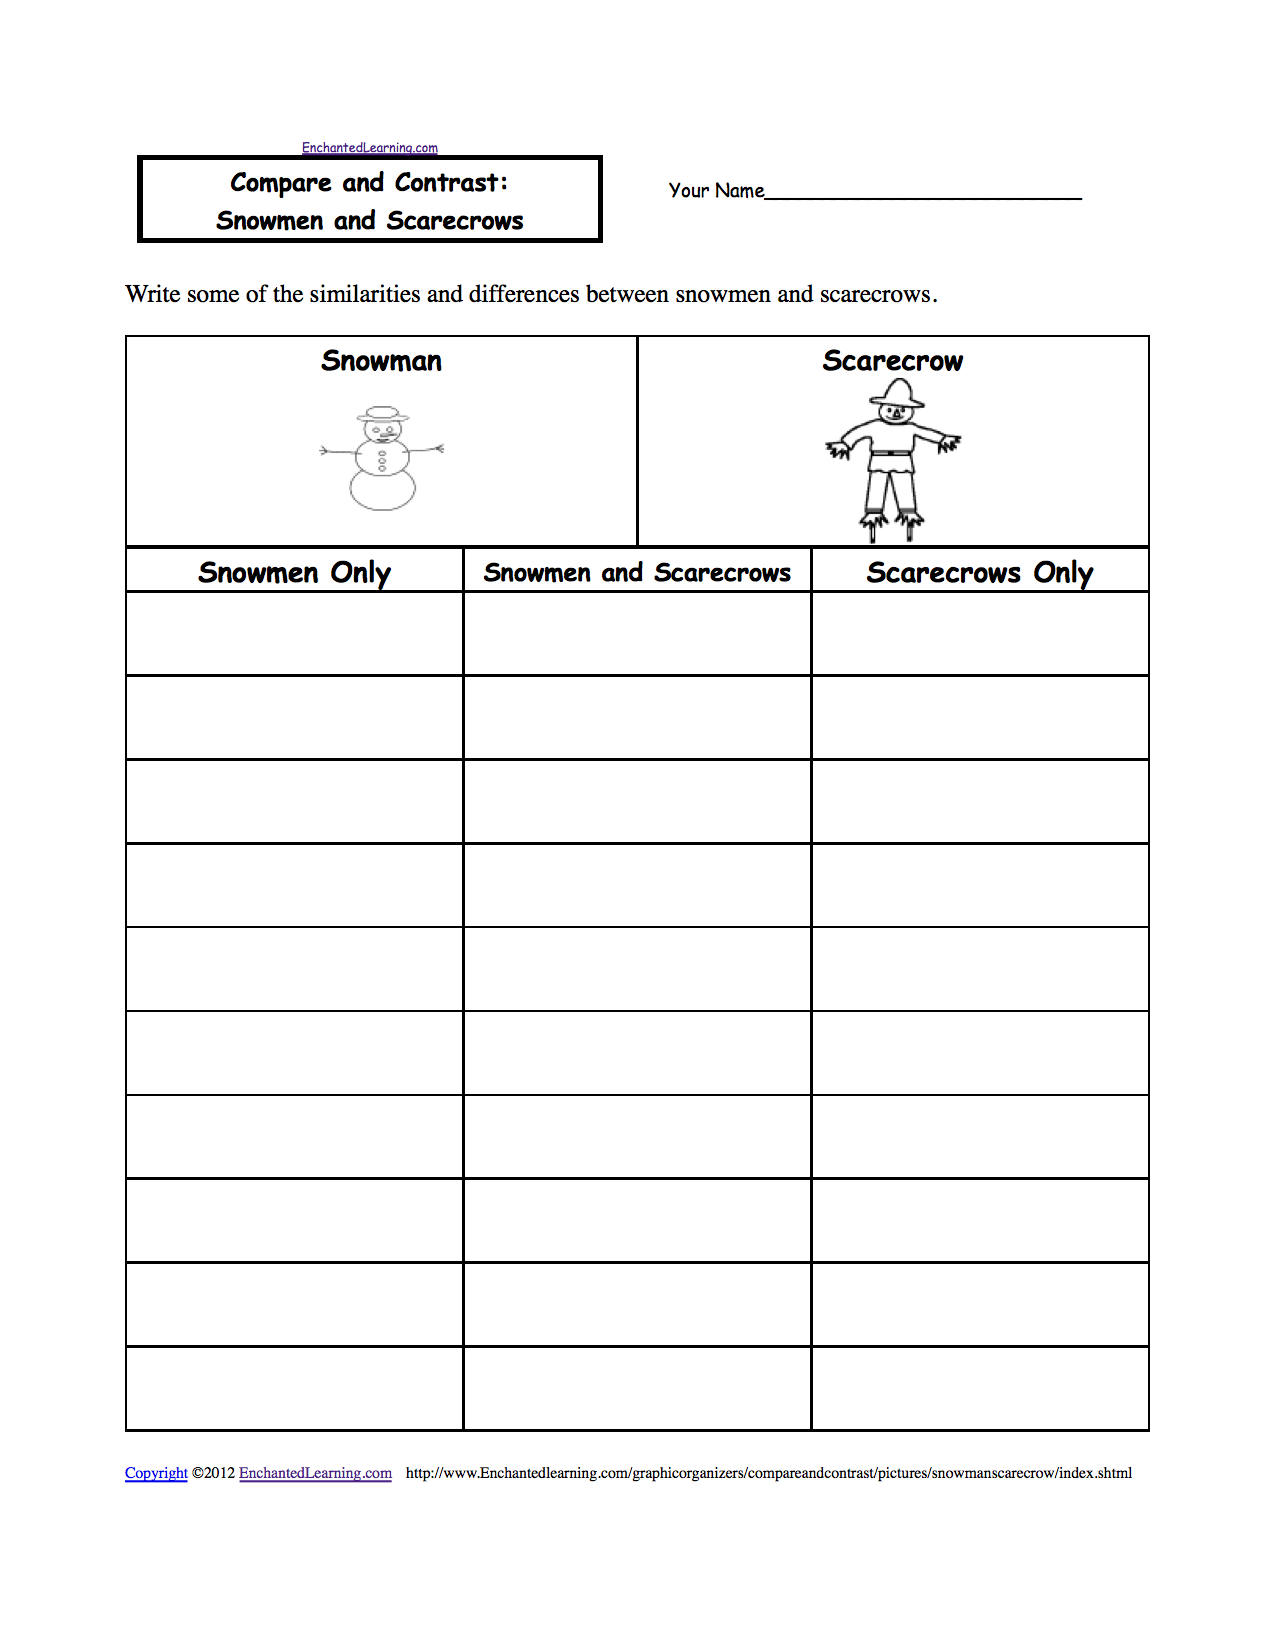 Printables Free Compare And Contrast Worksheets compare and contrast worksheets to print enchantedlearning com snowmen scarecrows